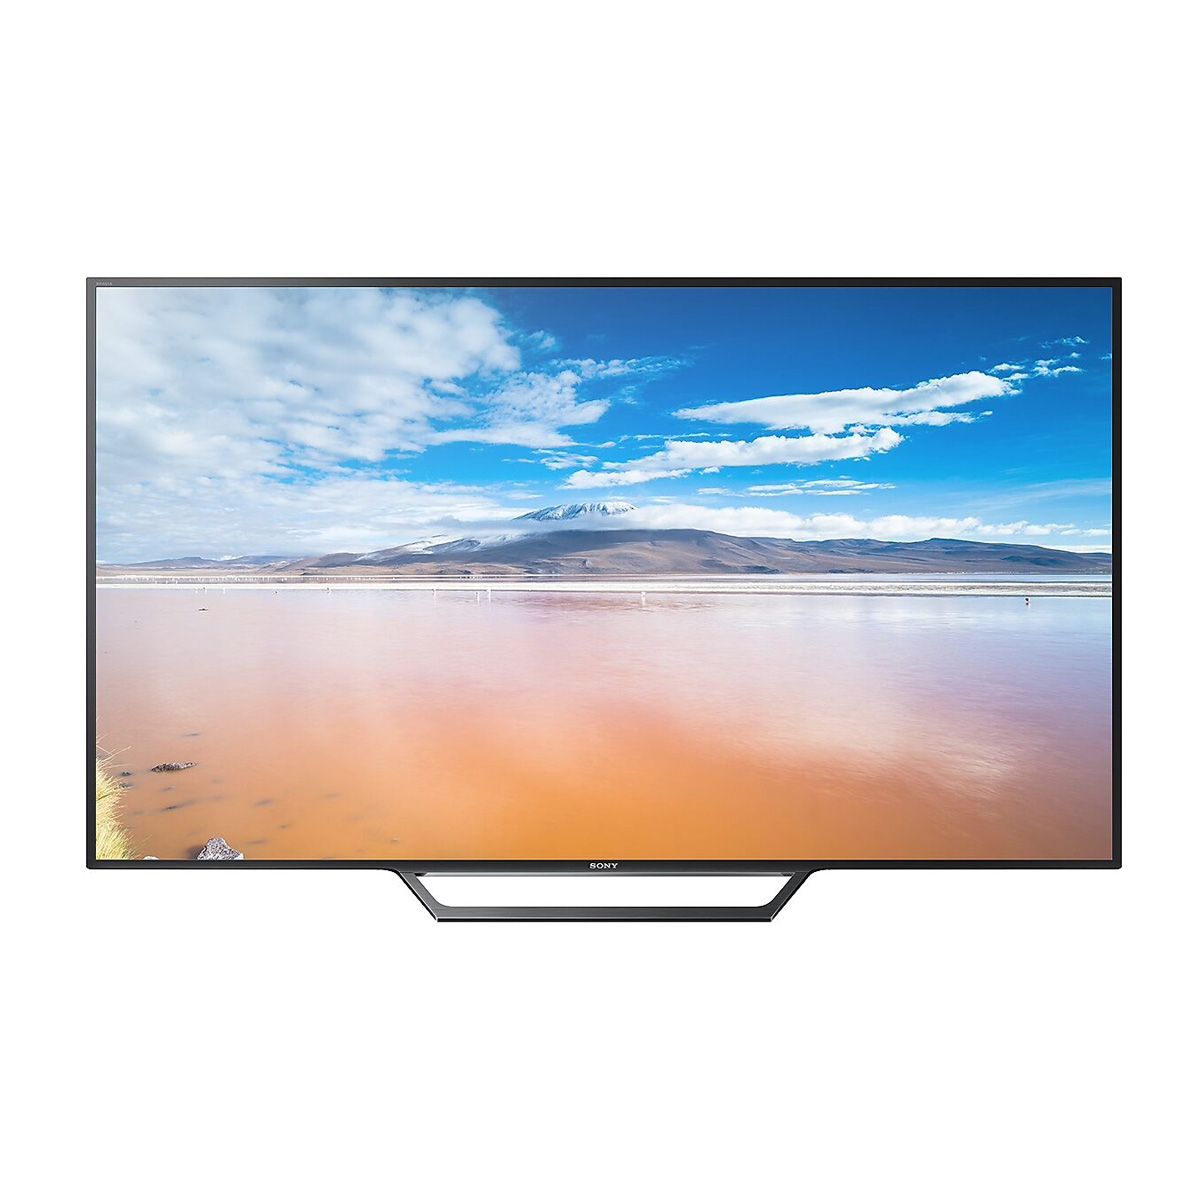 Sony Internet TV  KLV-32W602D